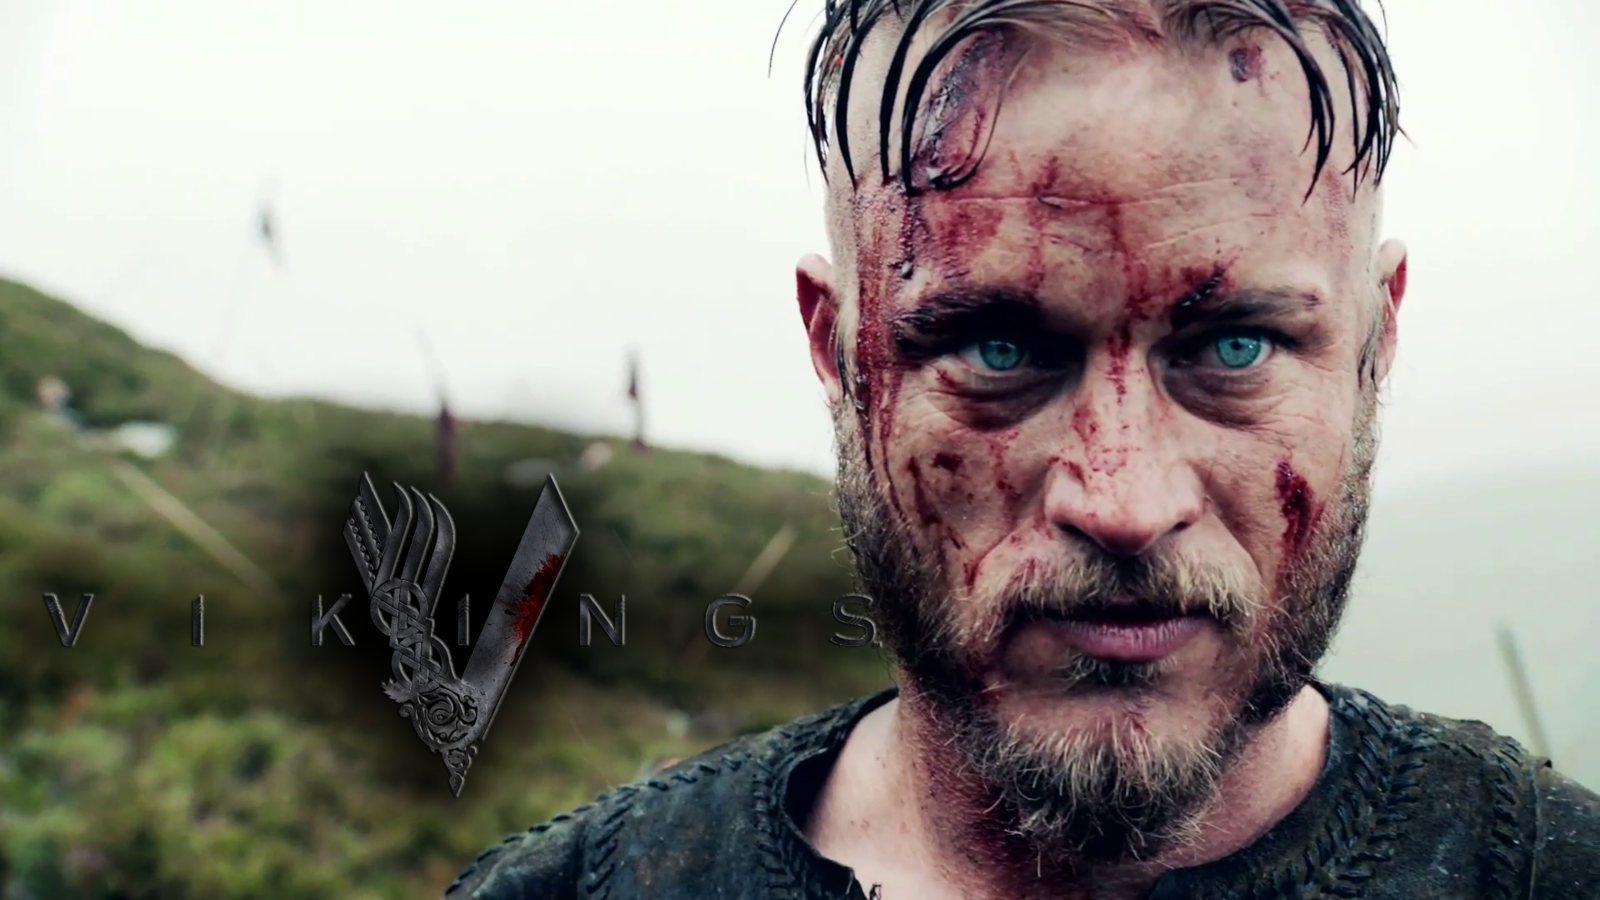 vikings_ragnar_lodbrok_by_palo90-d5y15so